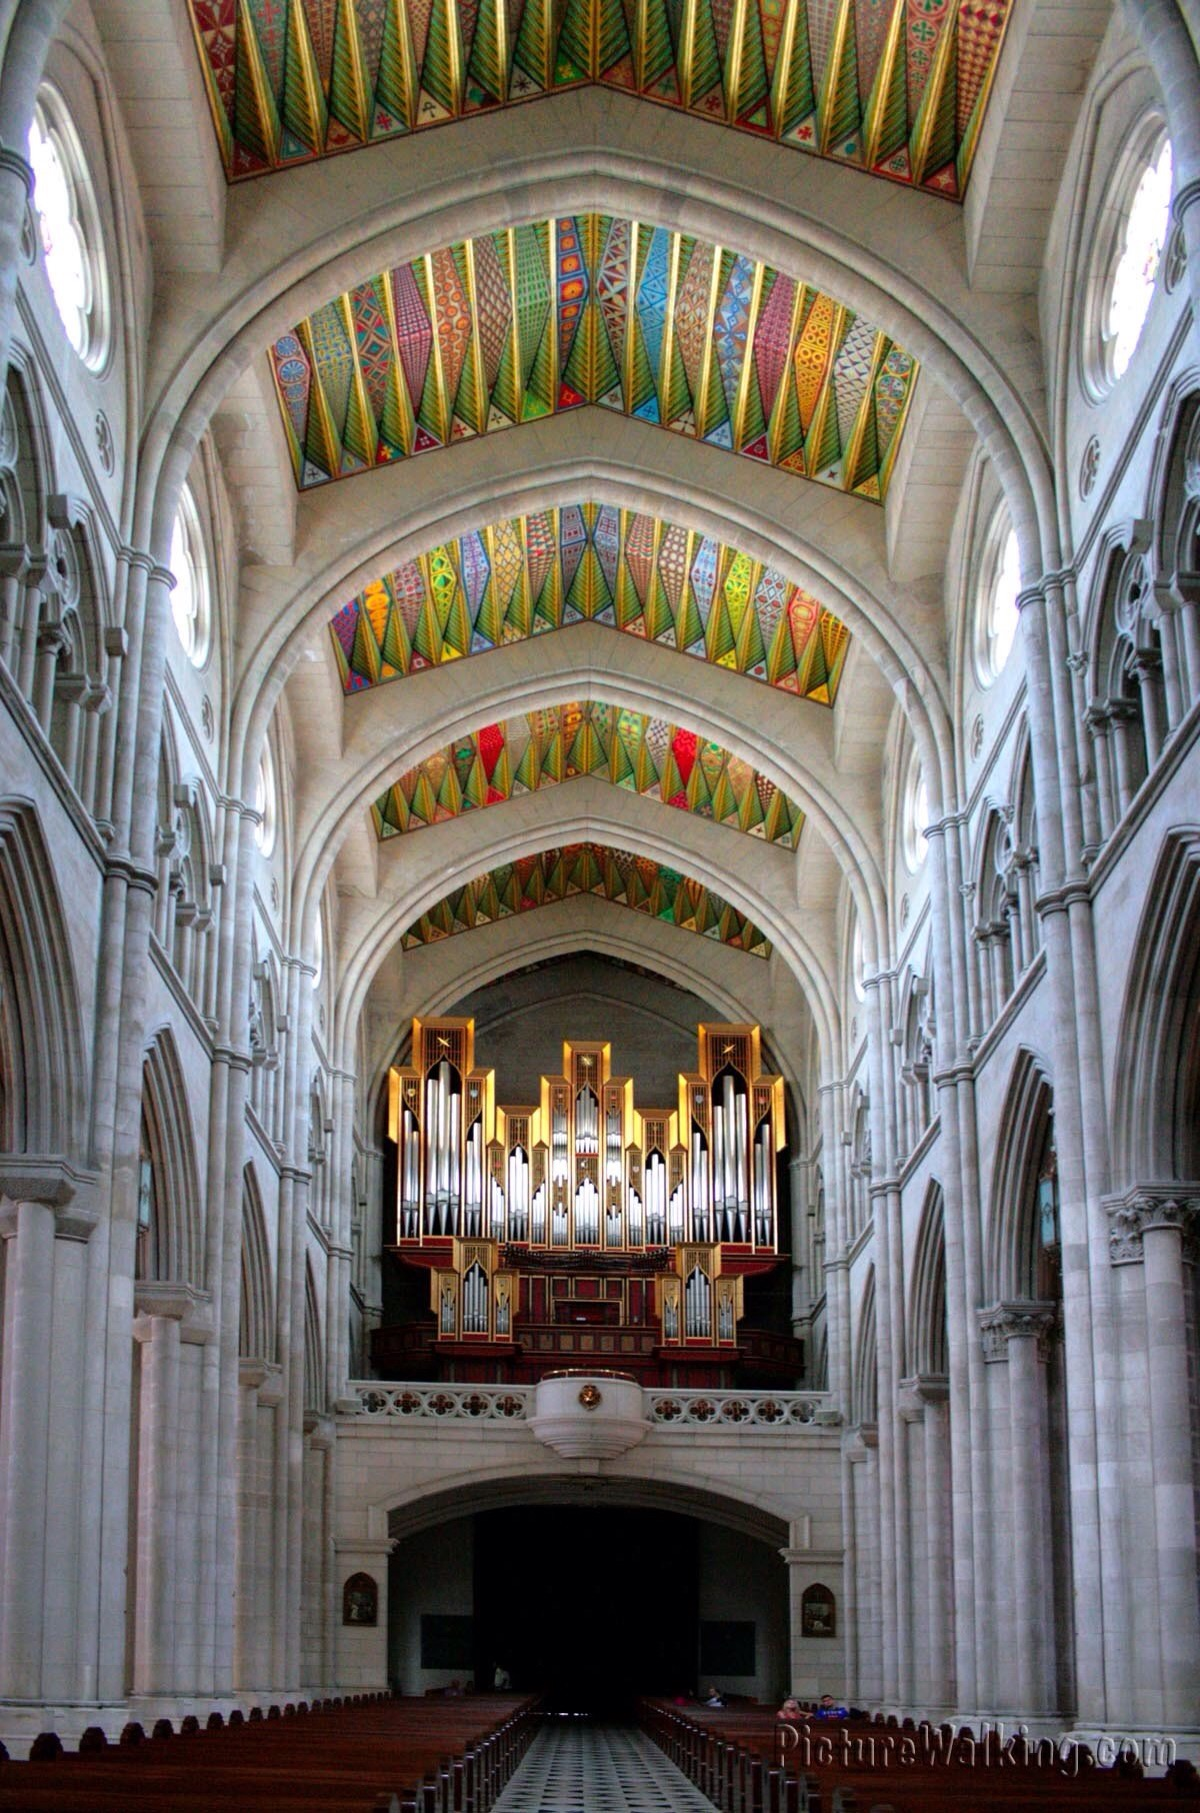 5,000 pipe organ - bright and colorful ceiling, unusual as it didn't have religious images.